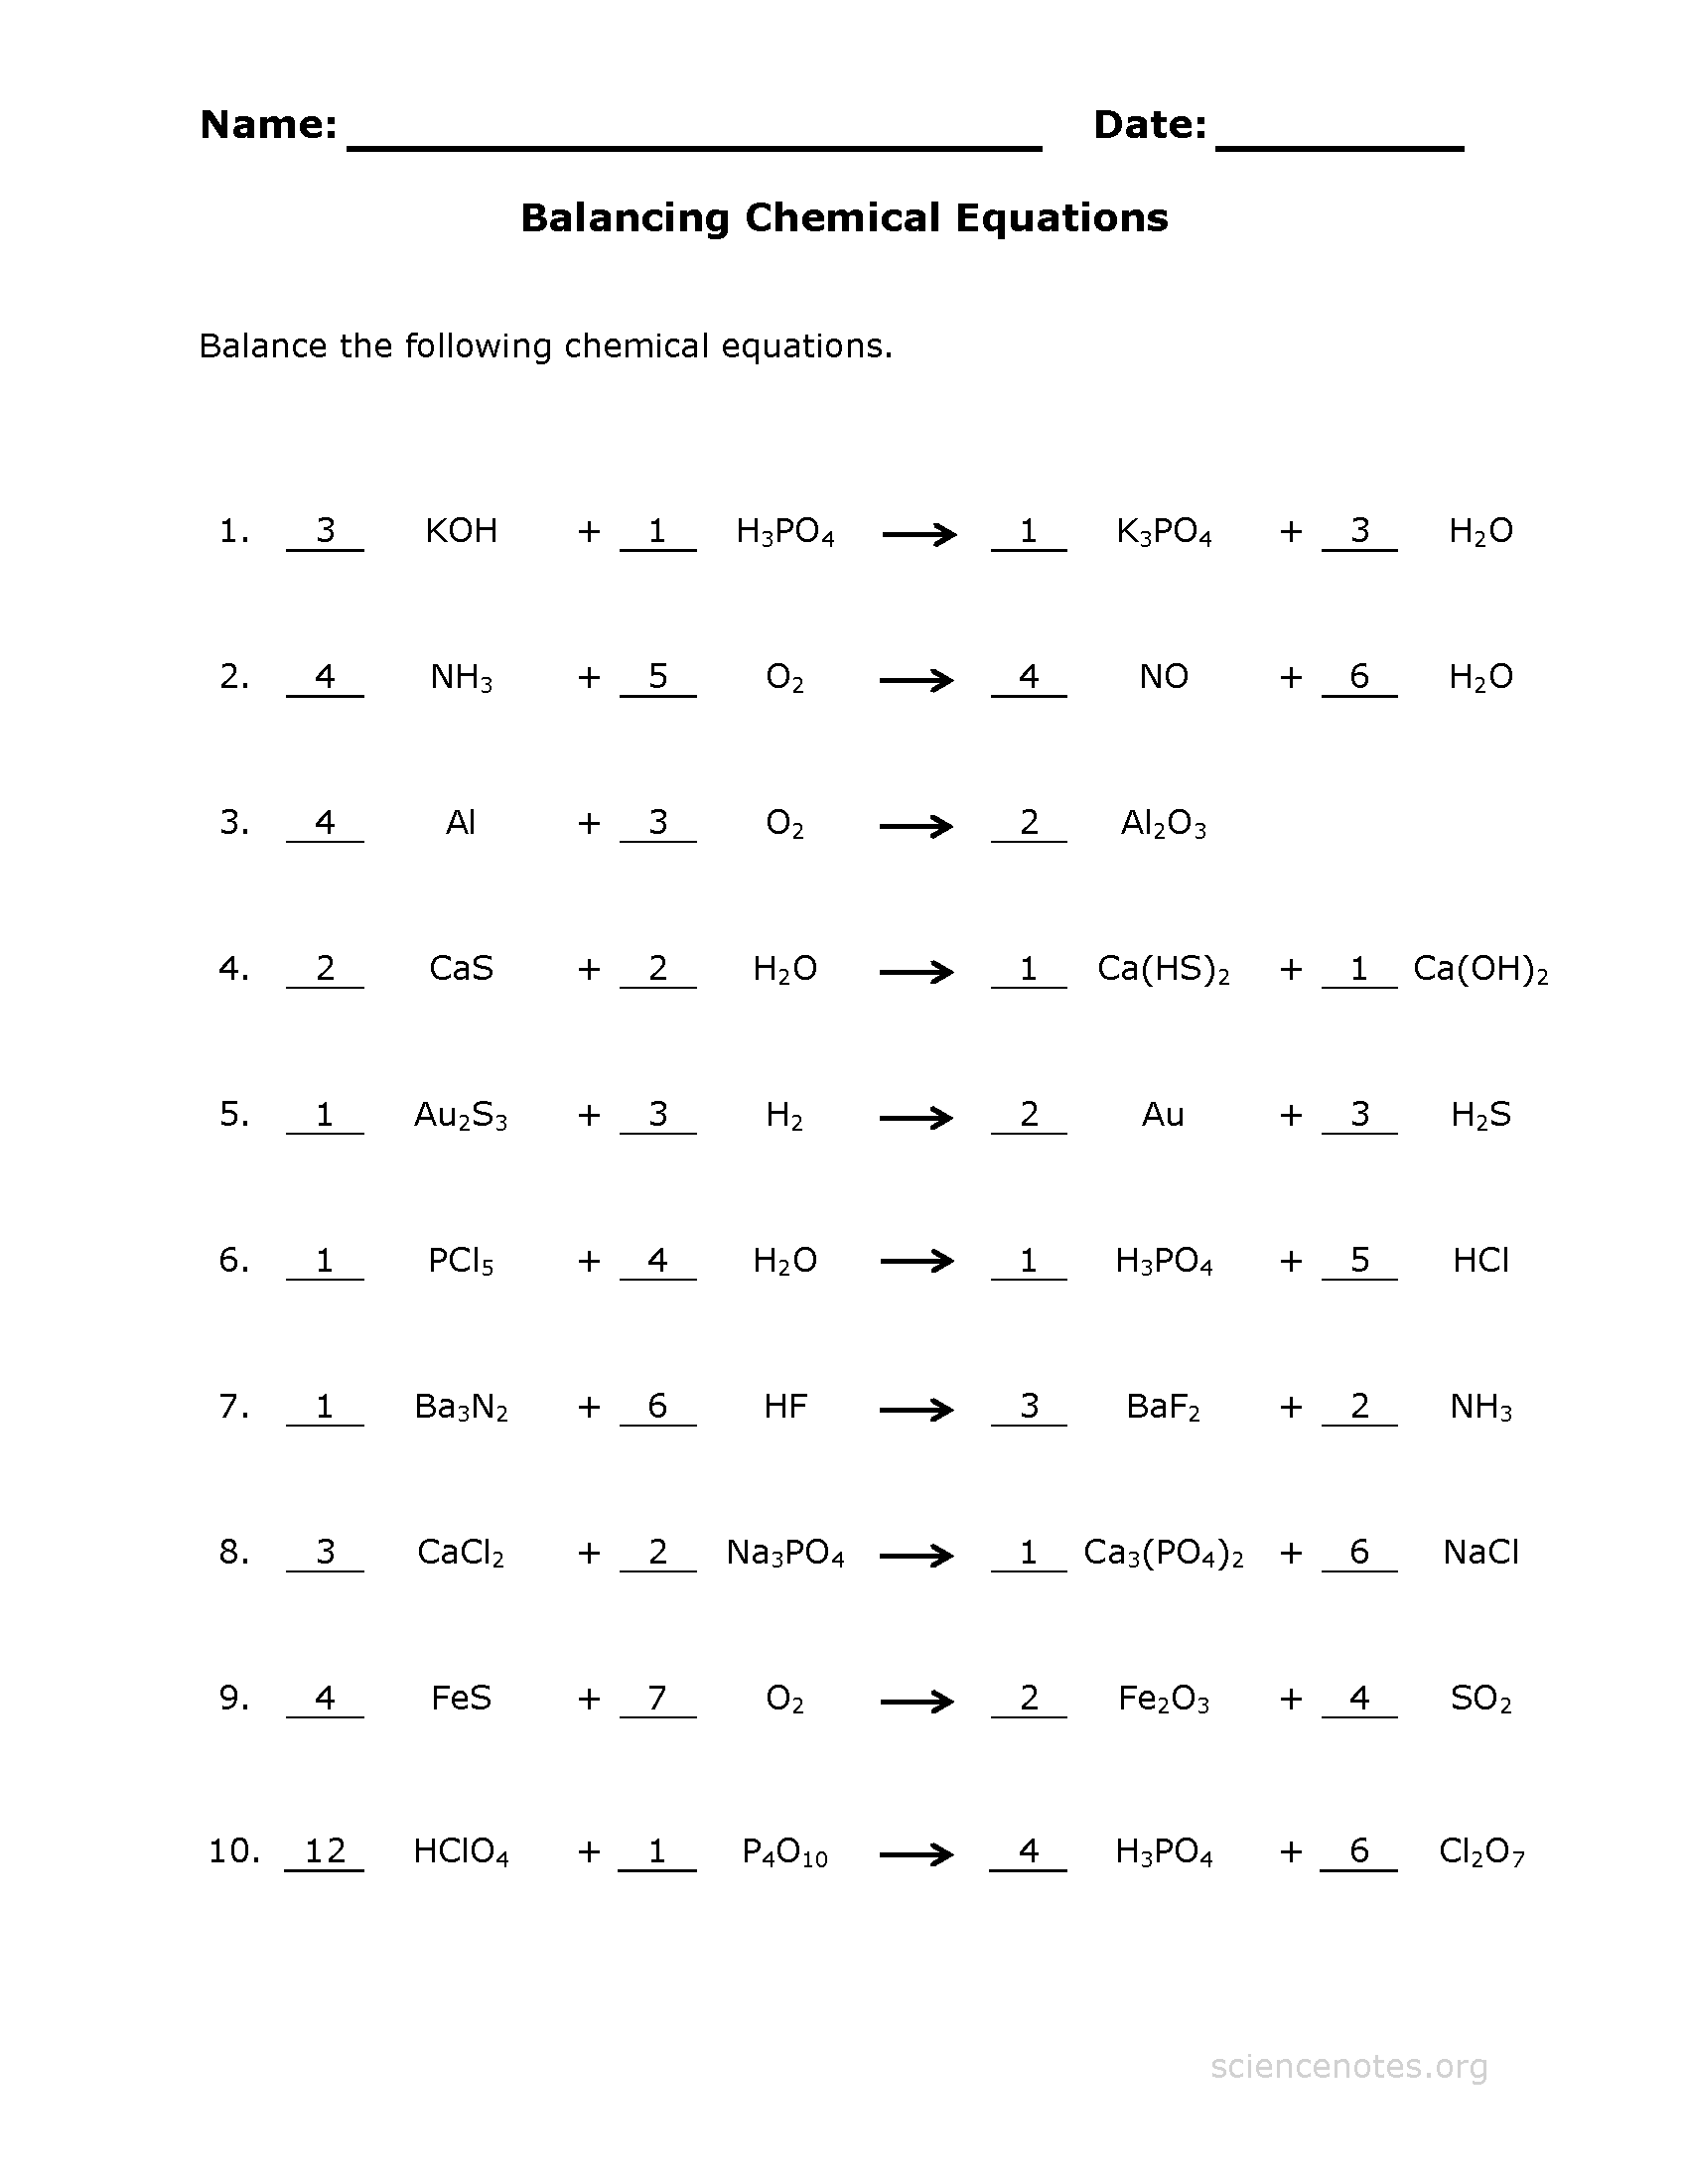 Worksheets Chemical Equations Worksheet balancing chemical equations practice sheet to see the completed check out our other equation worksheets